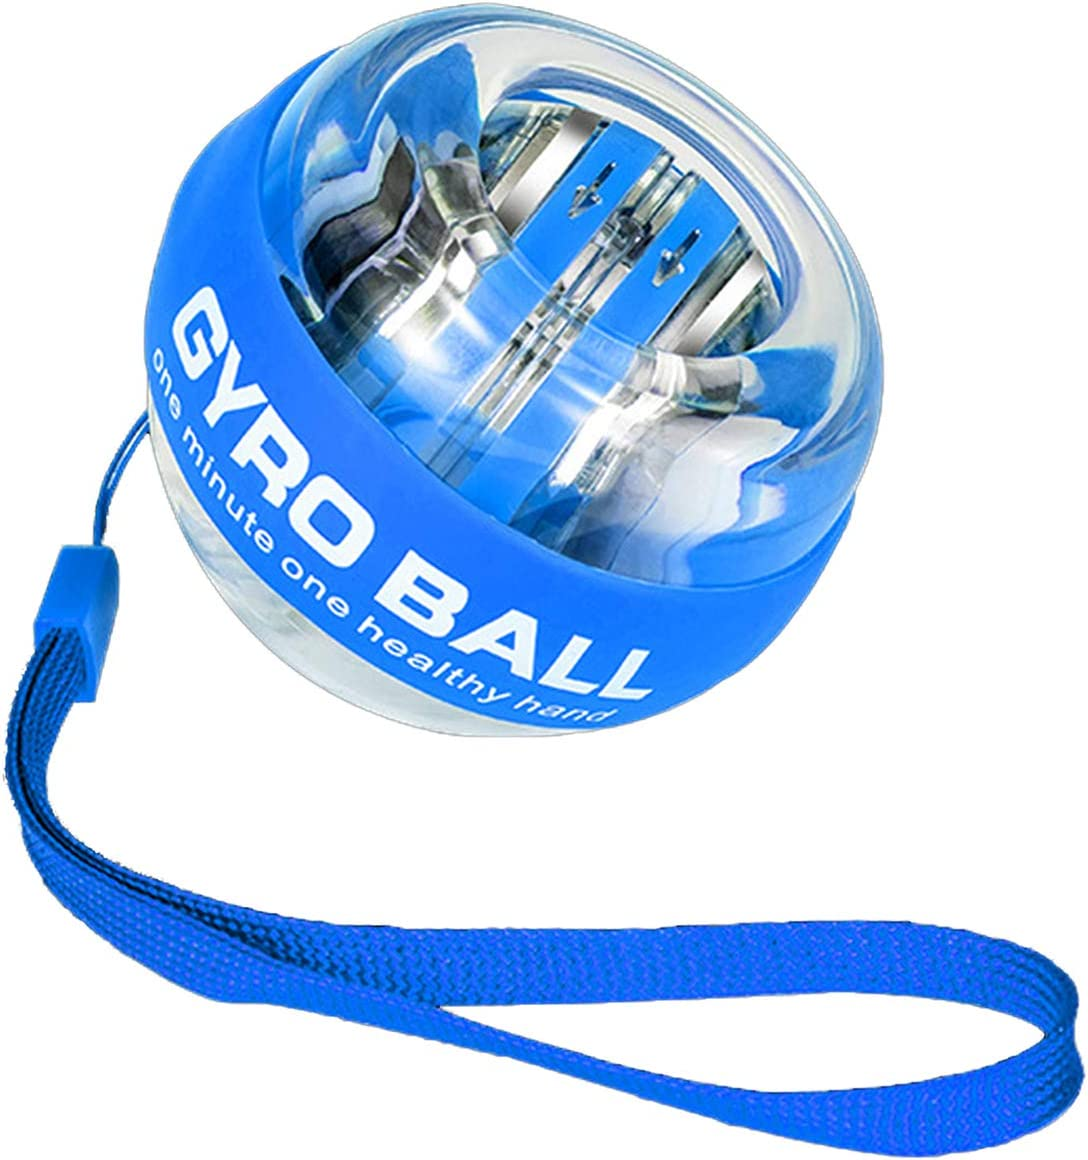 Gimehome Wrist Power Gyroscopic Popular overseas Sale SALE% OFF Fore Ball and Strengthener